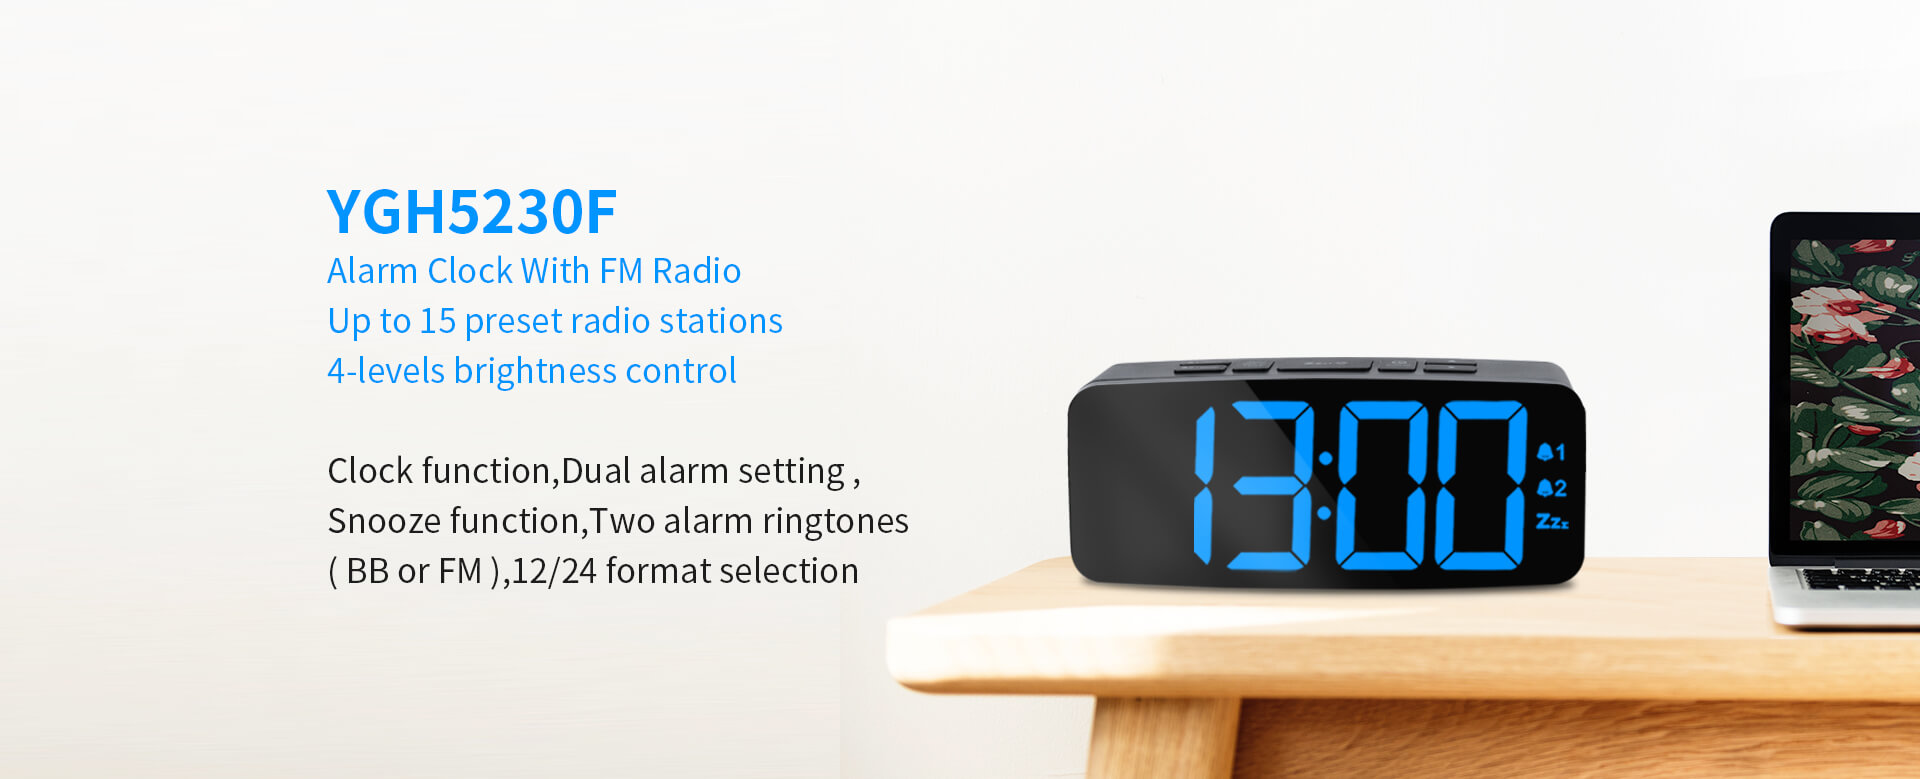 Alarm Clock With FM Radio